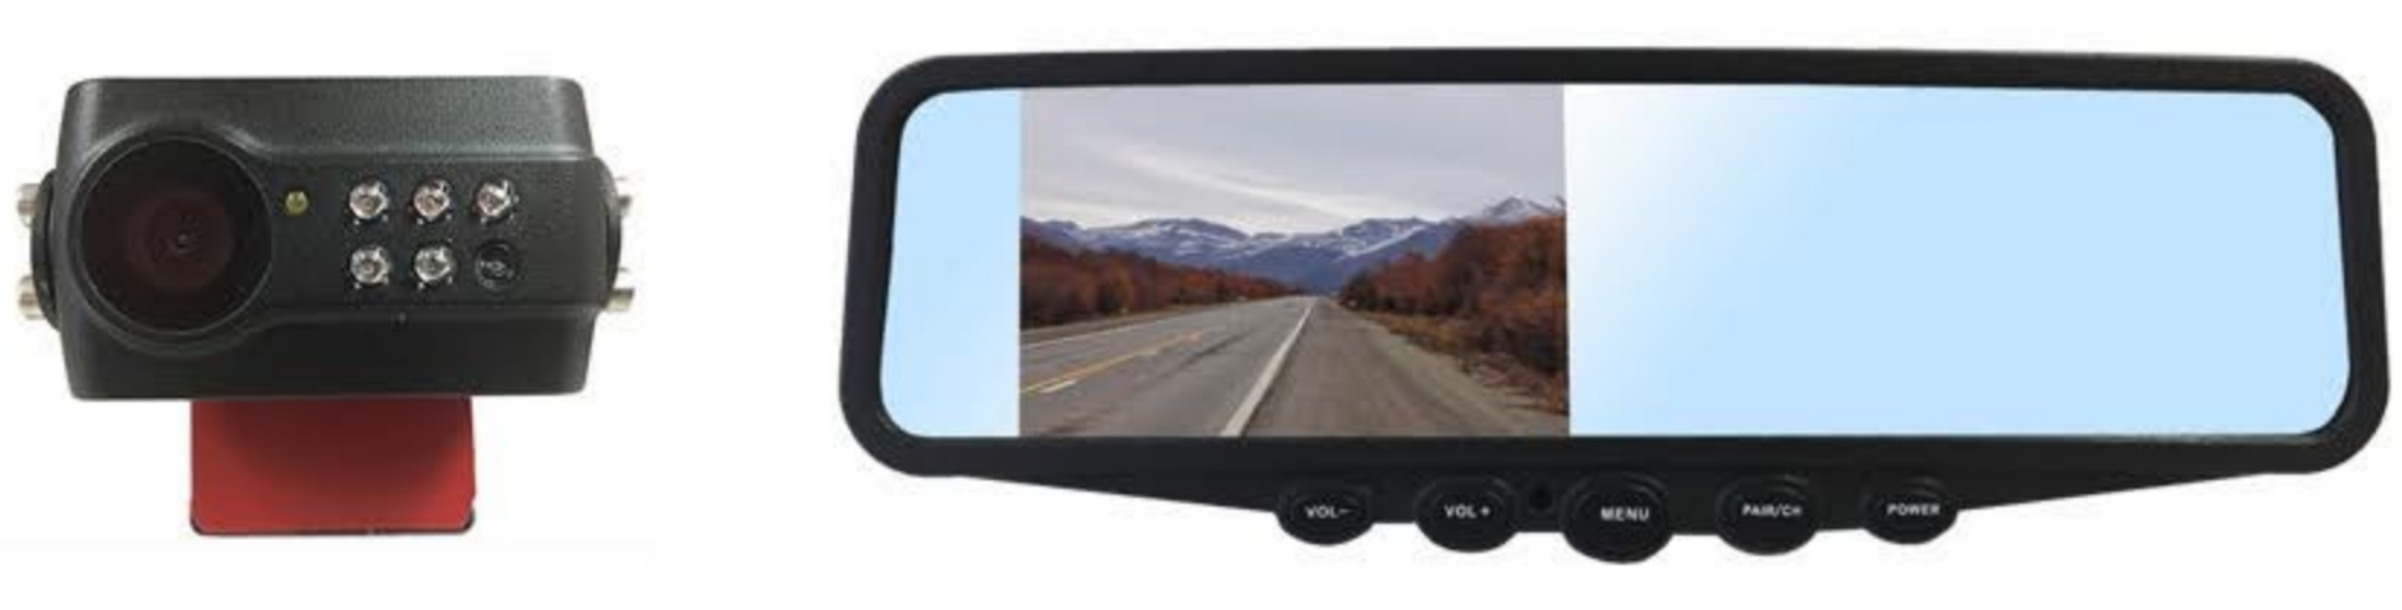 New Automotive Aftermarket Backup Camera System Fleet